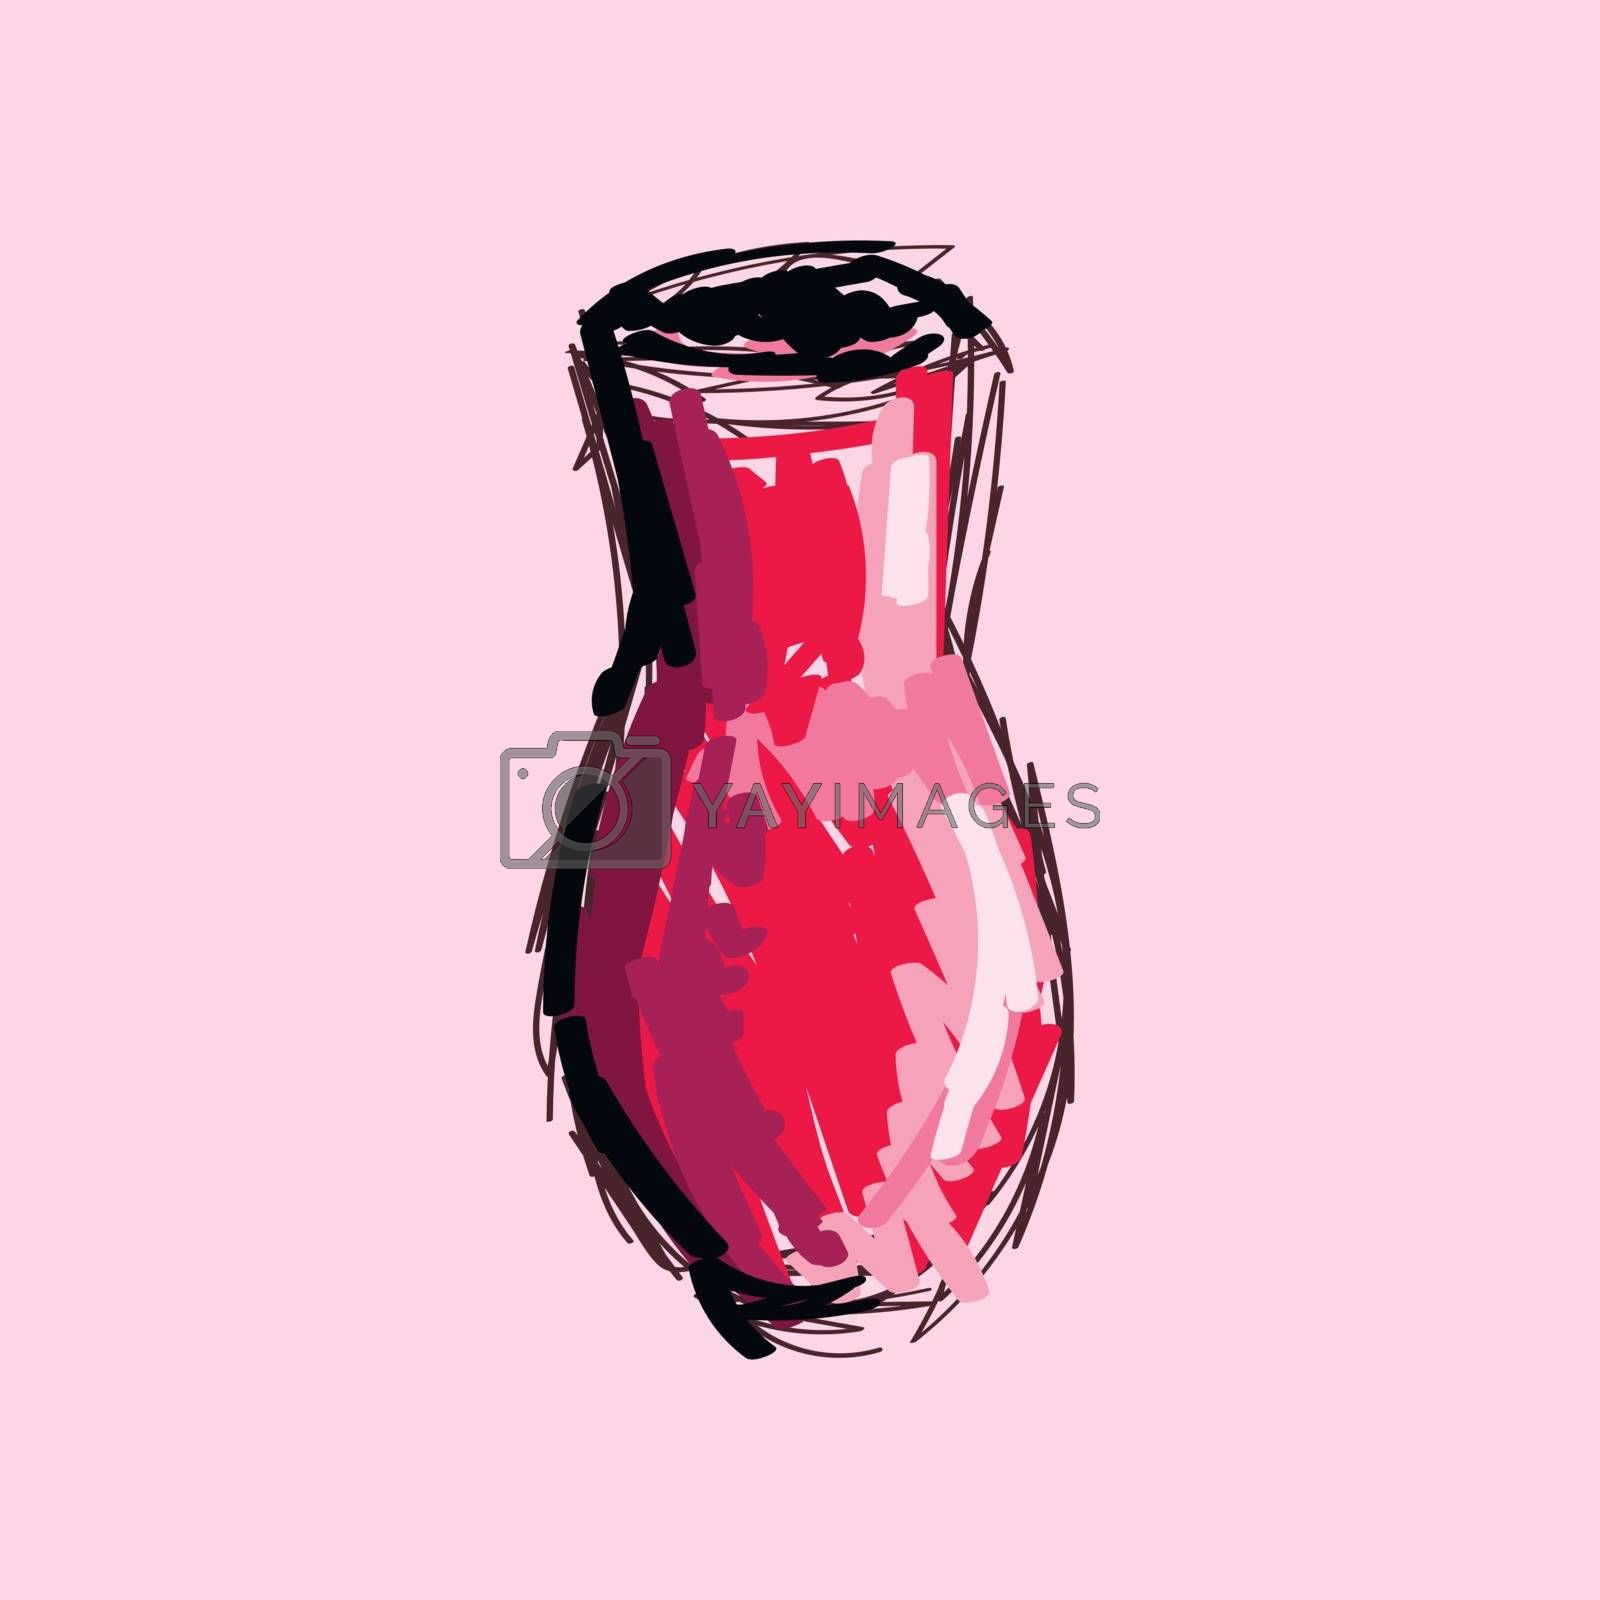 Royalty free image of Clipart of a vase art vector or color illustration by Morphart